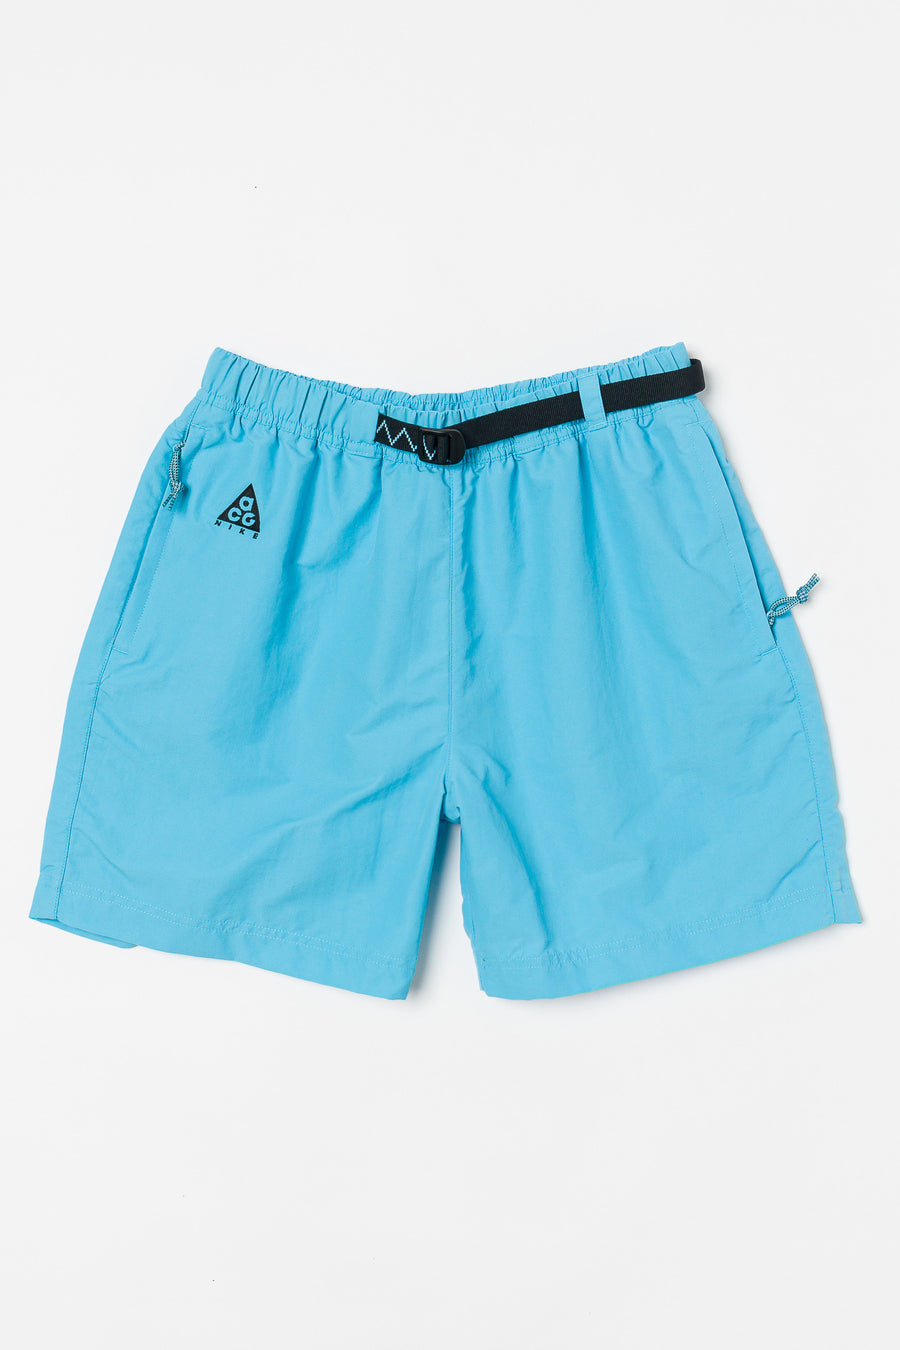 ACG Woven Shorts in Blue Gale